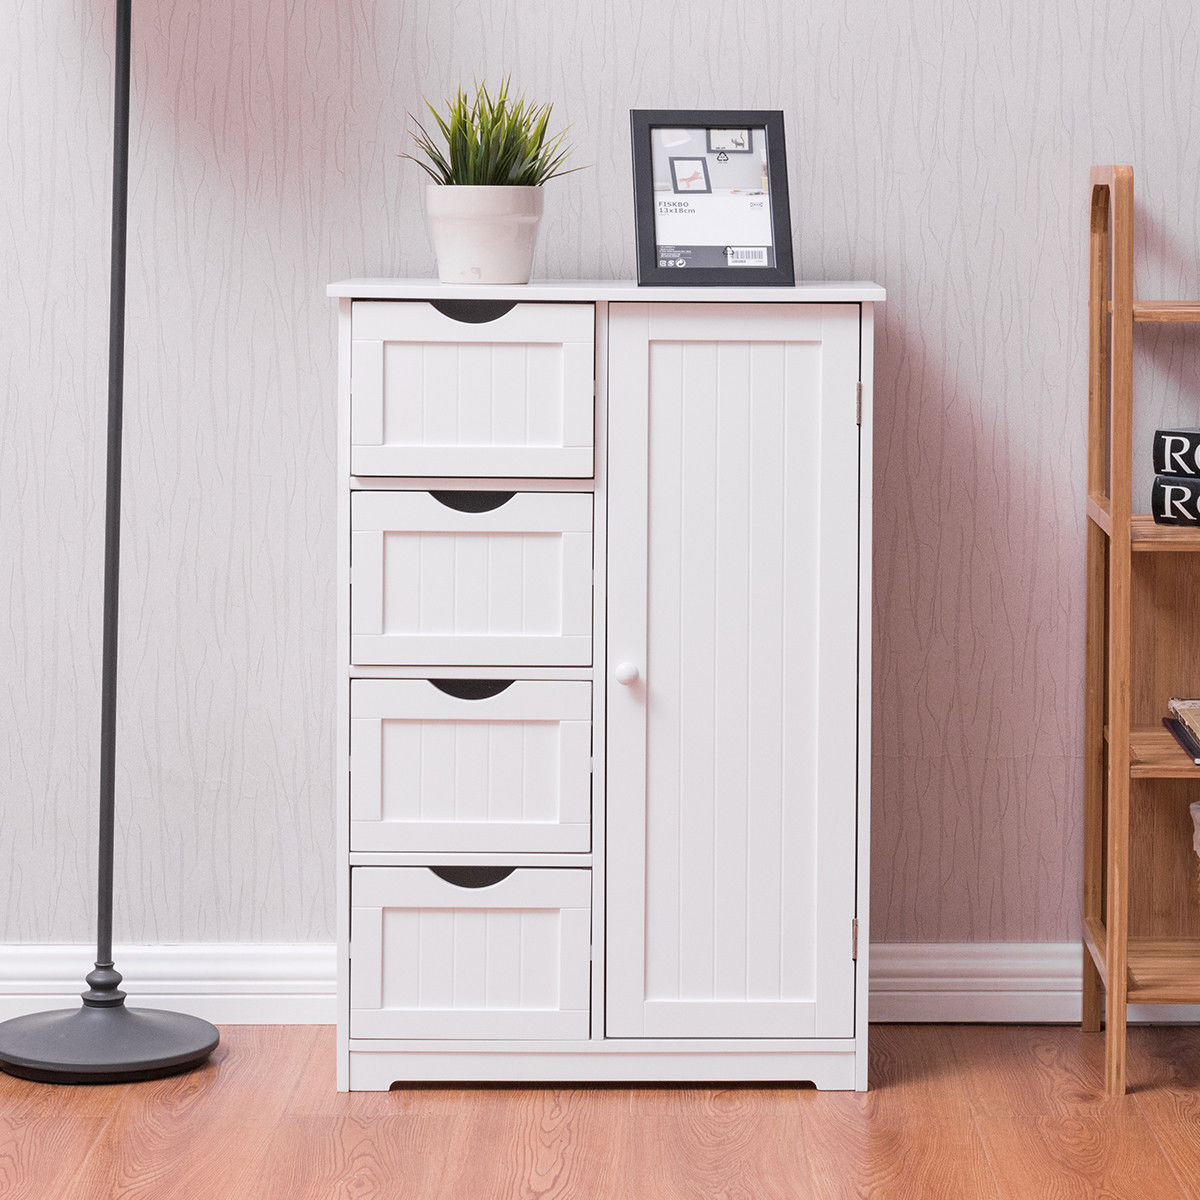 white wooden bathroom cabinets costway wooden 4 drawer bathroom cabinet storage cupboard 29205